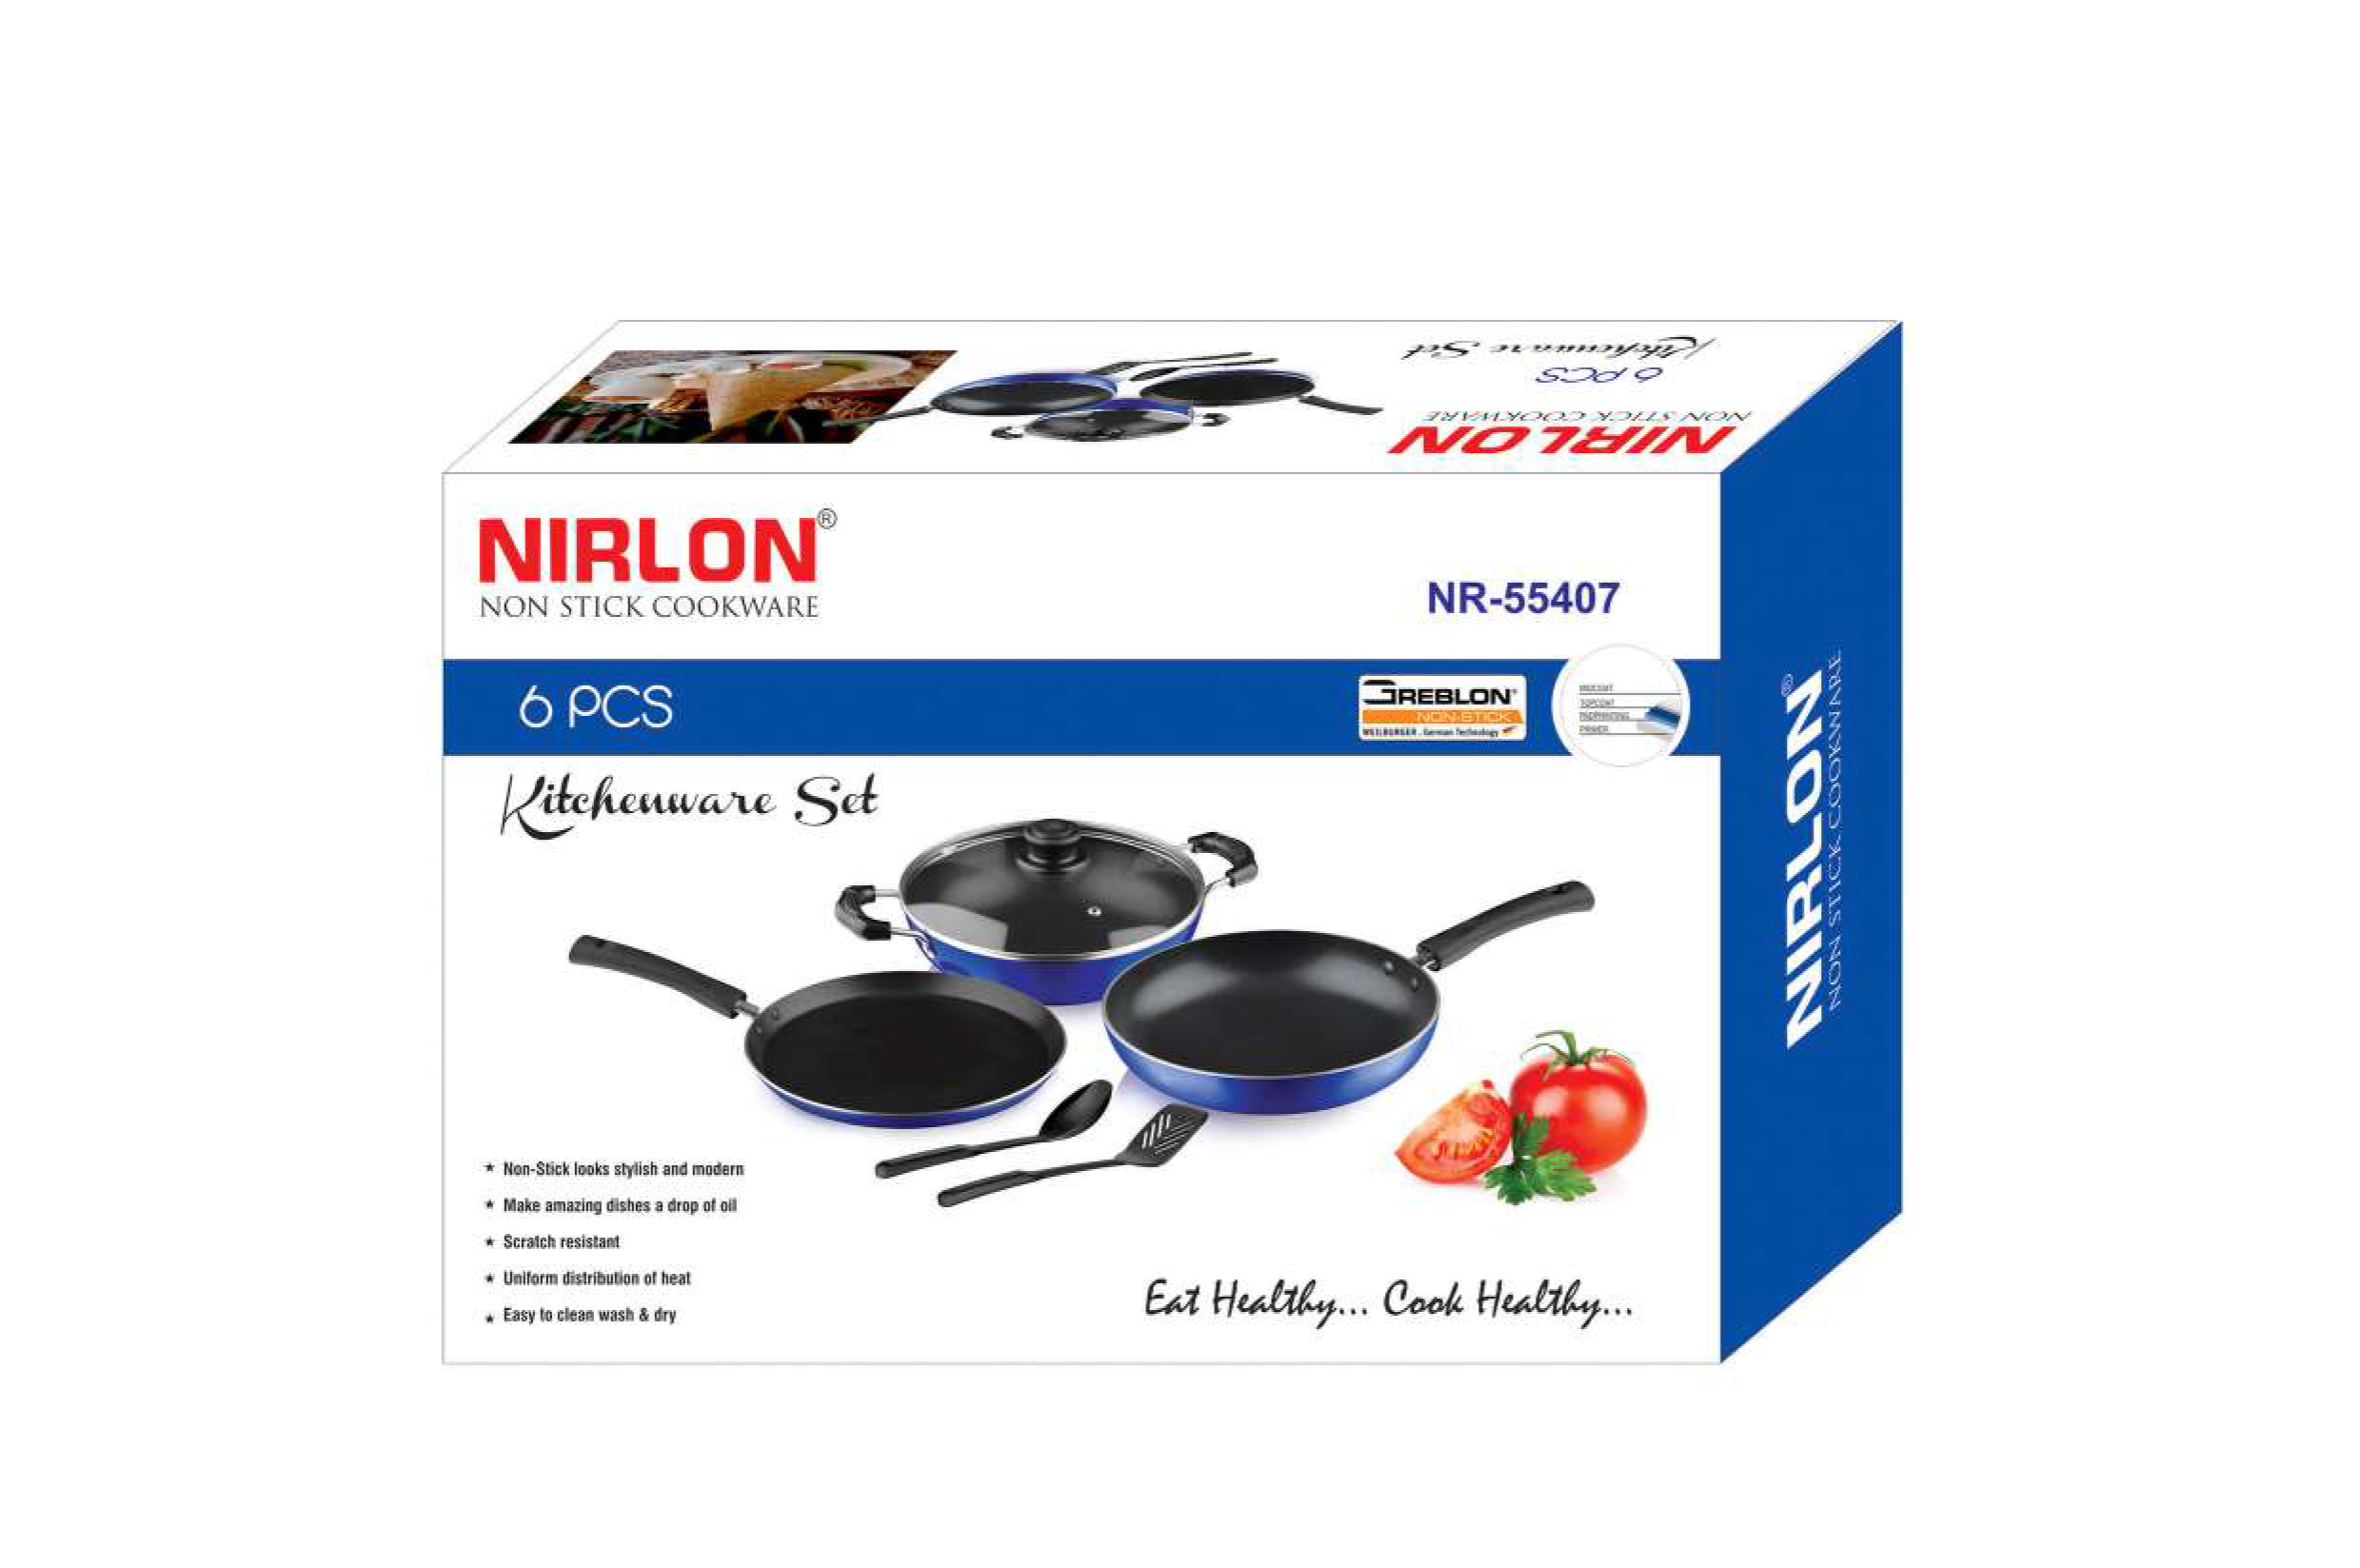 Nirlon Non Stick Coated Aluminium Kitchenware Gift Set of 6 Pieces, Cooking Pan and Pot Utensils